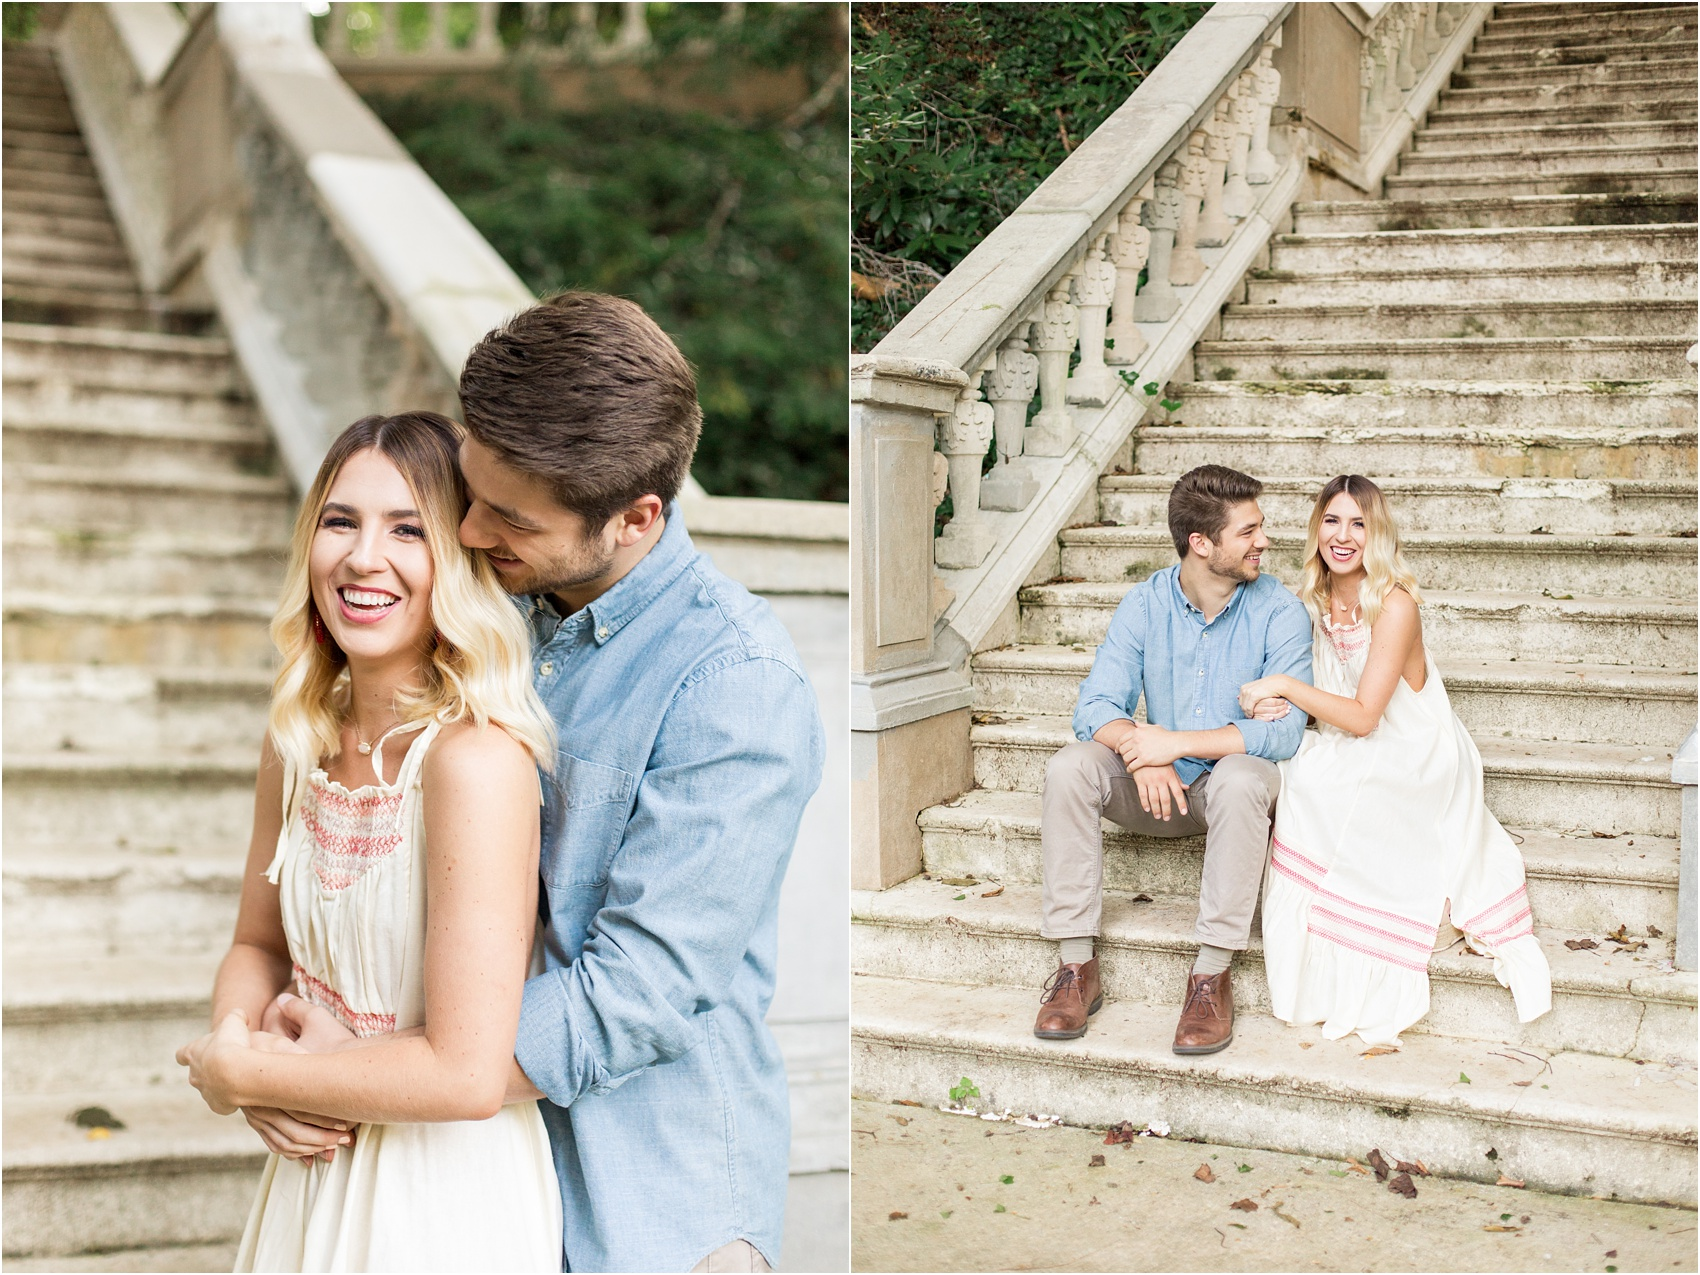 Savannah Eve Photography- Lauren & Chase @ CWG-2.jpg